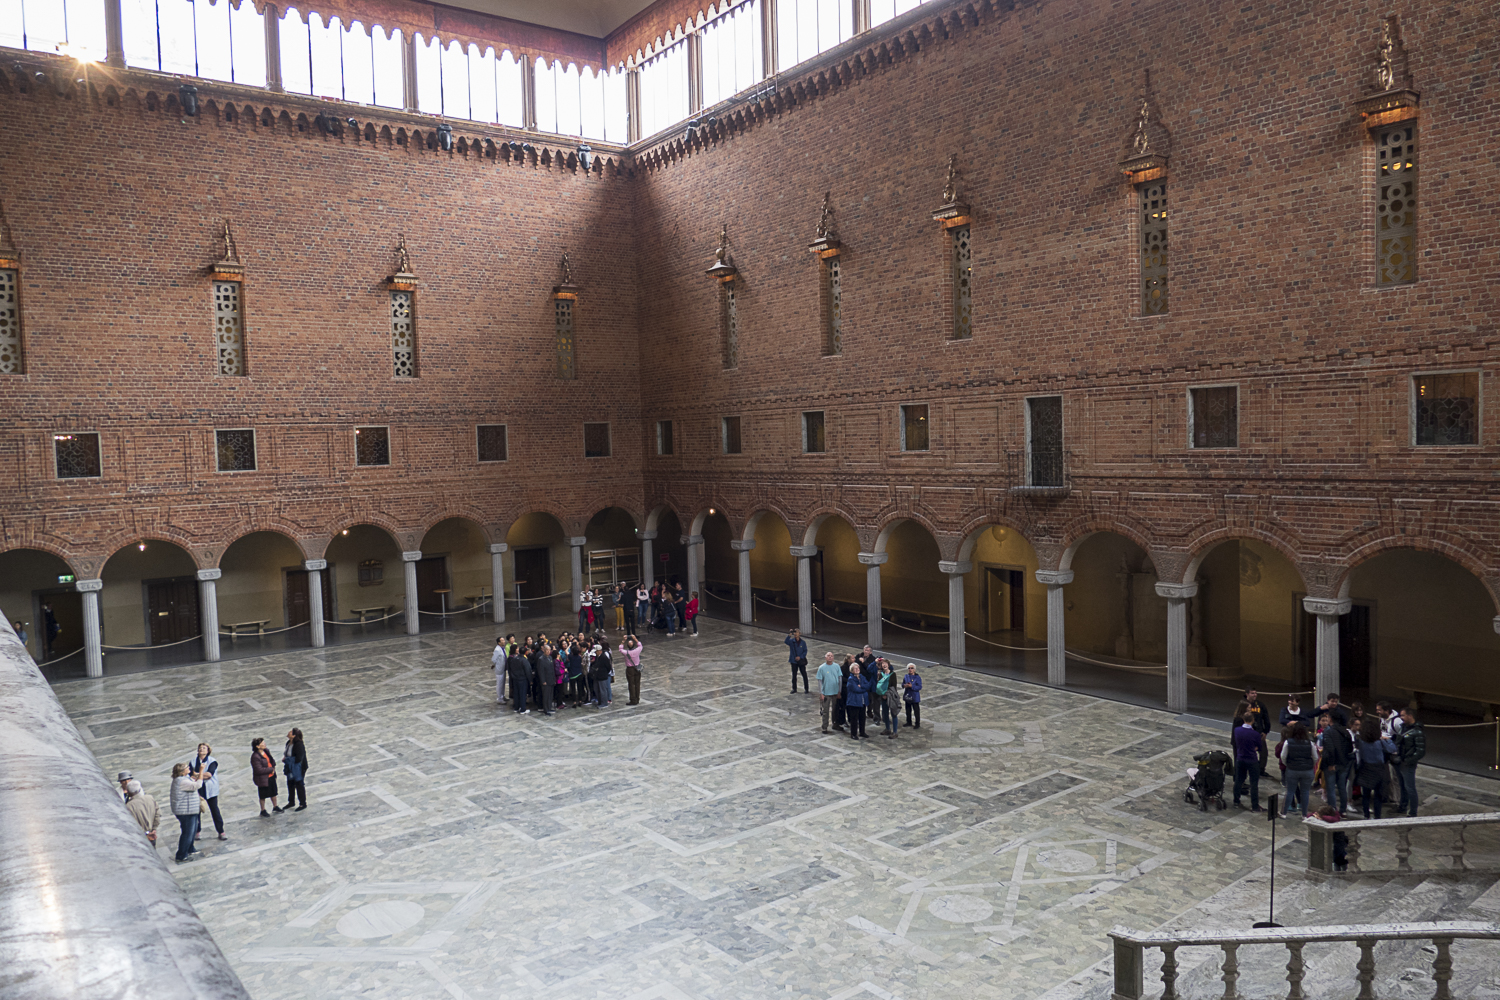 Courtyard of the Stockholm City Hall. This is the banquet hall for the annual Nobel Prize winners in December.